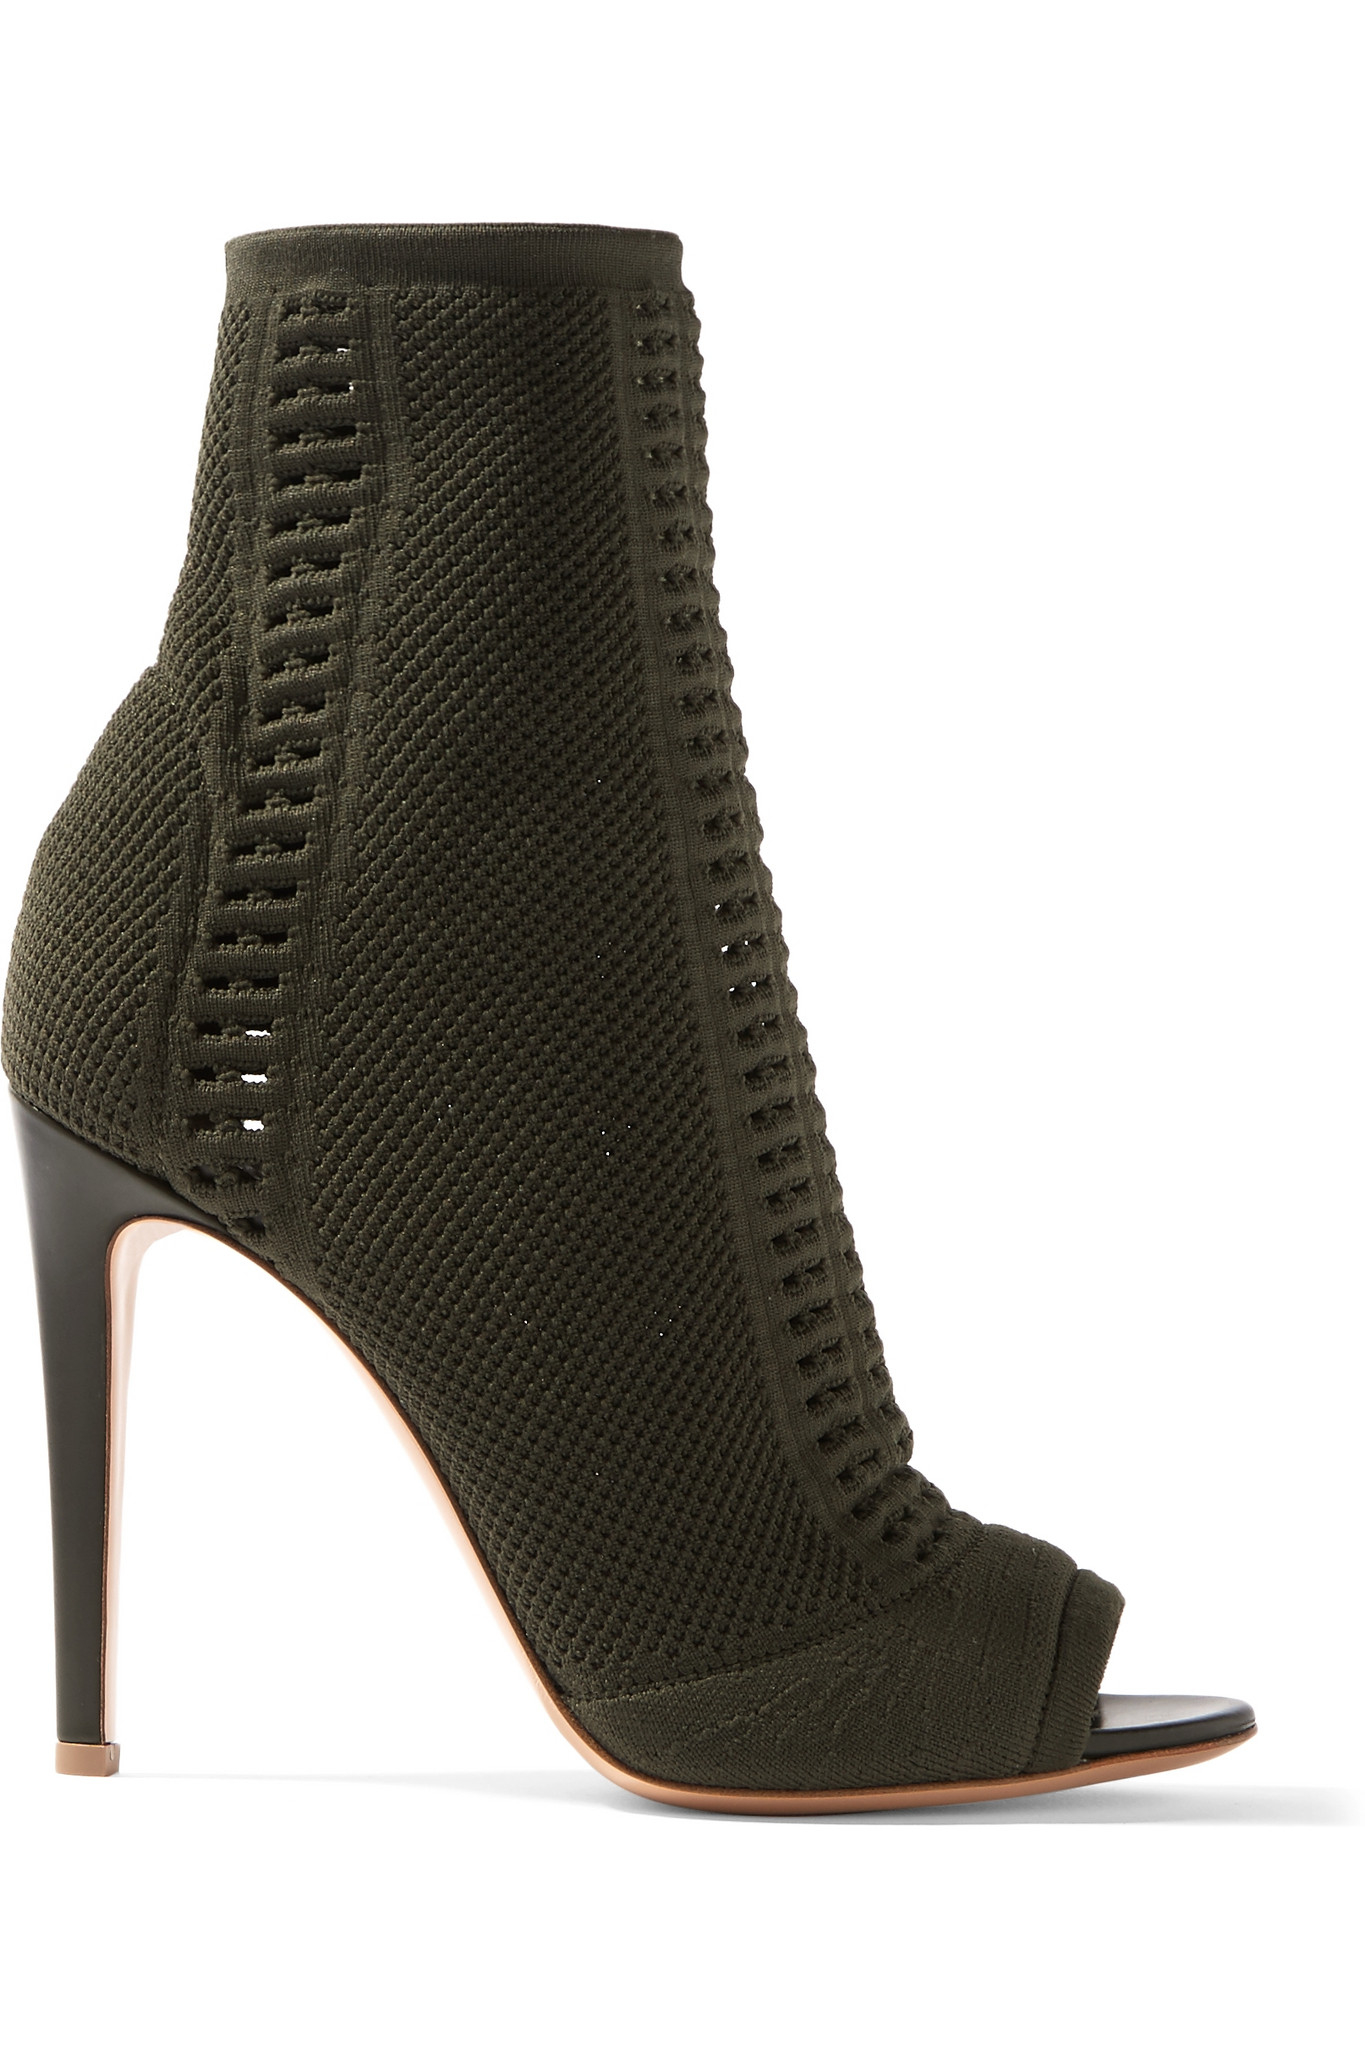 gianvito rossi stretch knit boots in green lyst. Black Bedroom Furniture Sets. Home Design Ideas